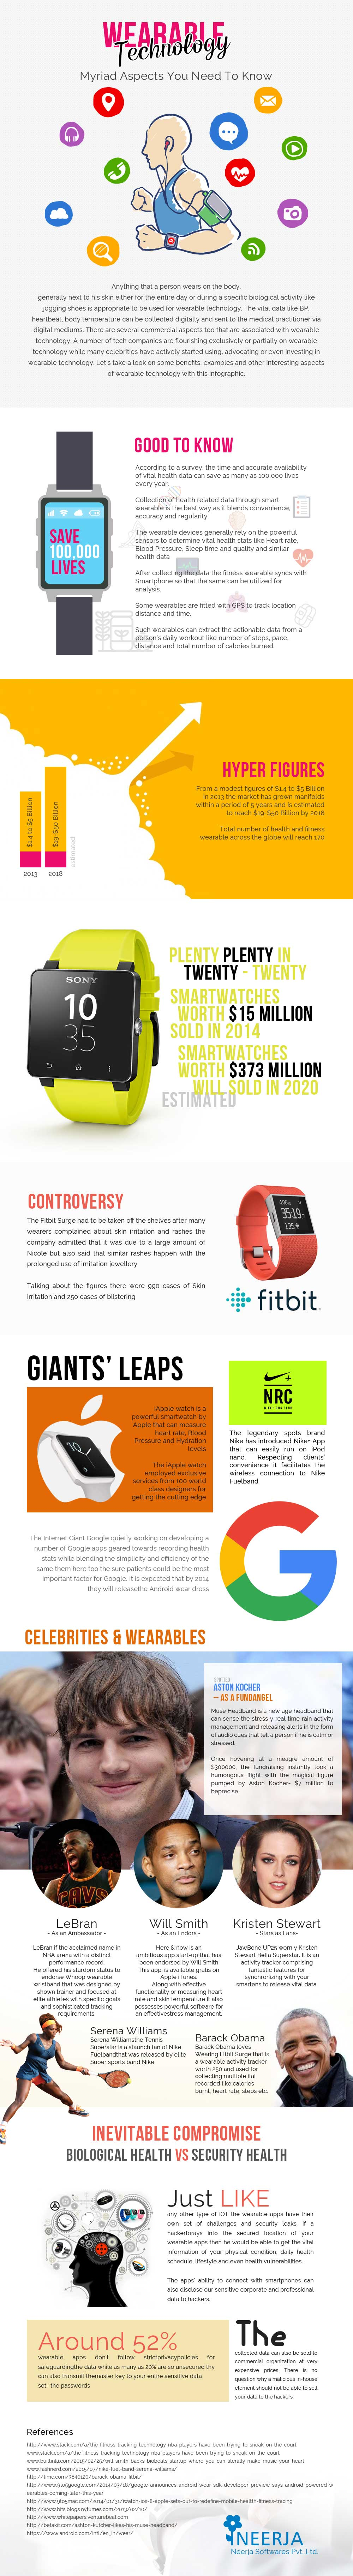 Wearable-Technology---Myriad-Aspects-You-Need-To-Know